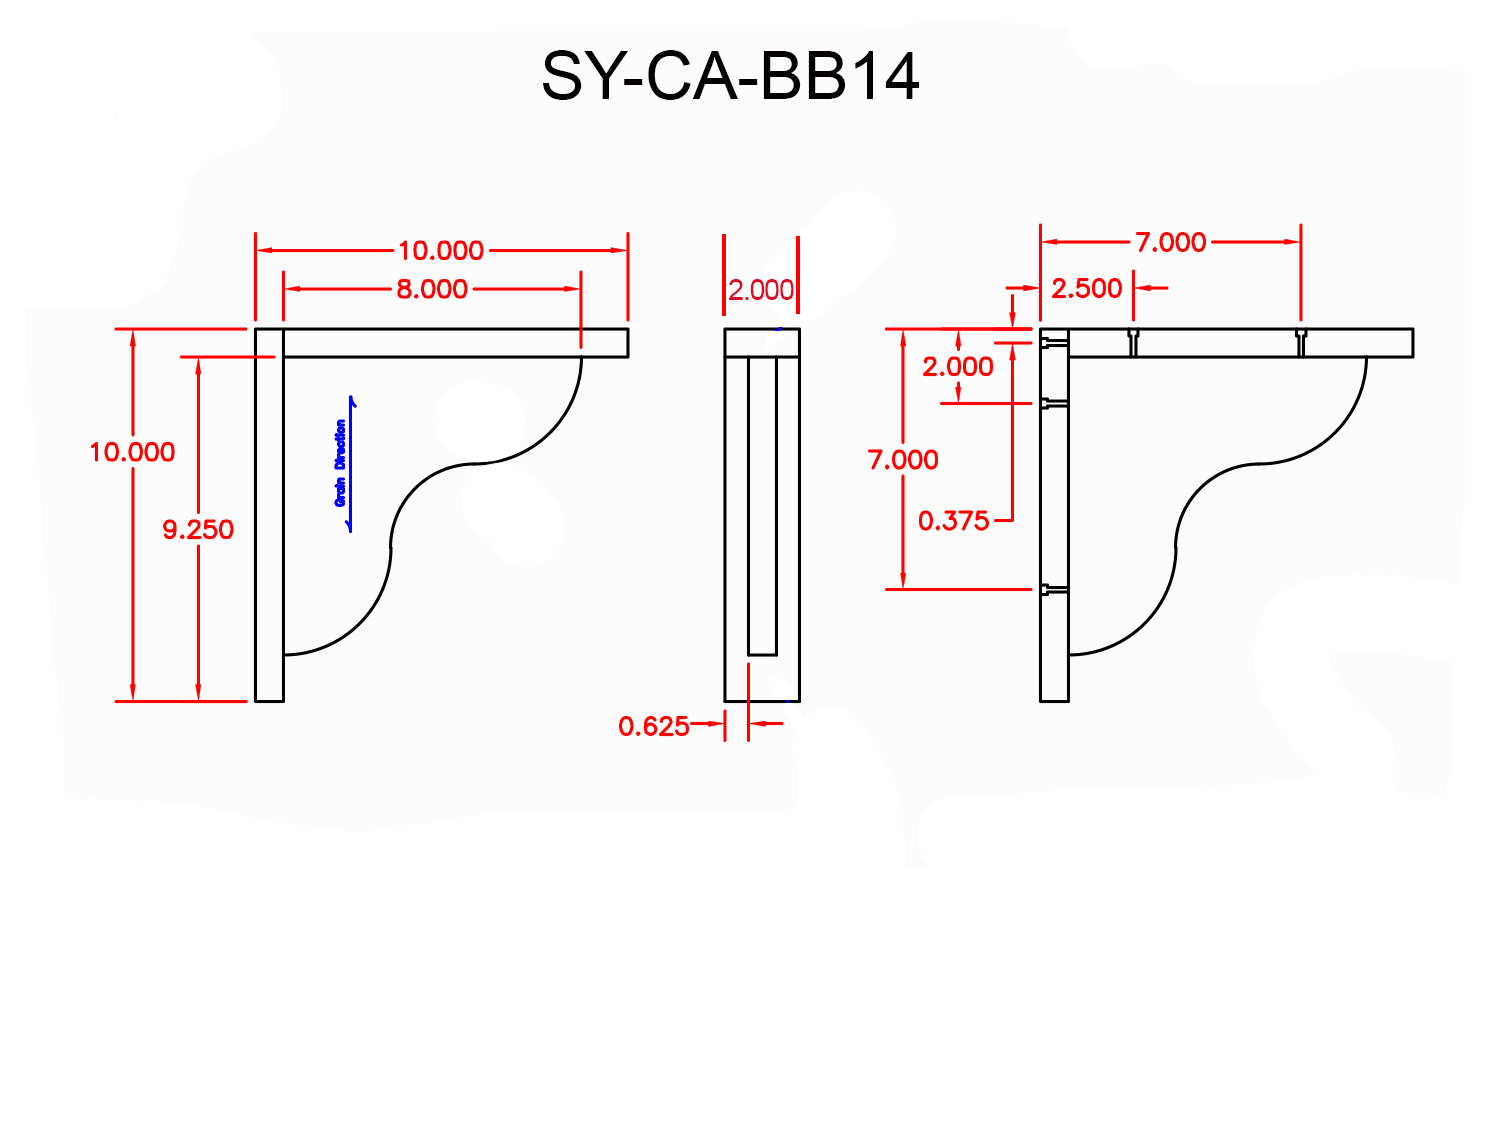 SY-CA-BB14 Line Drawing